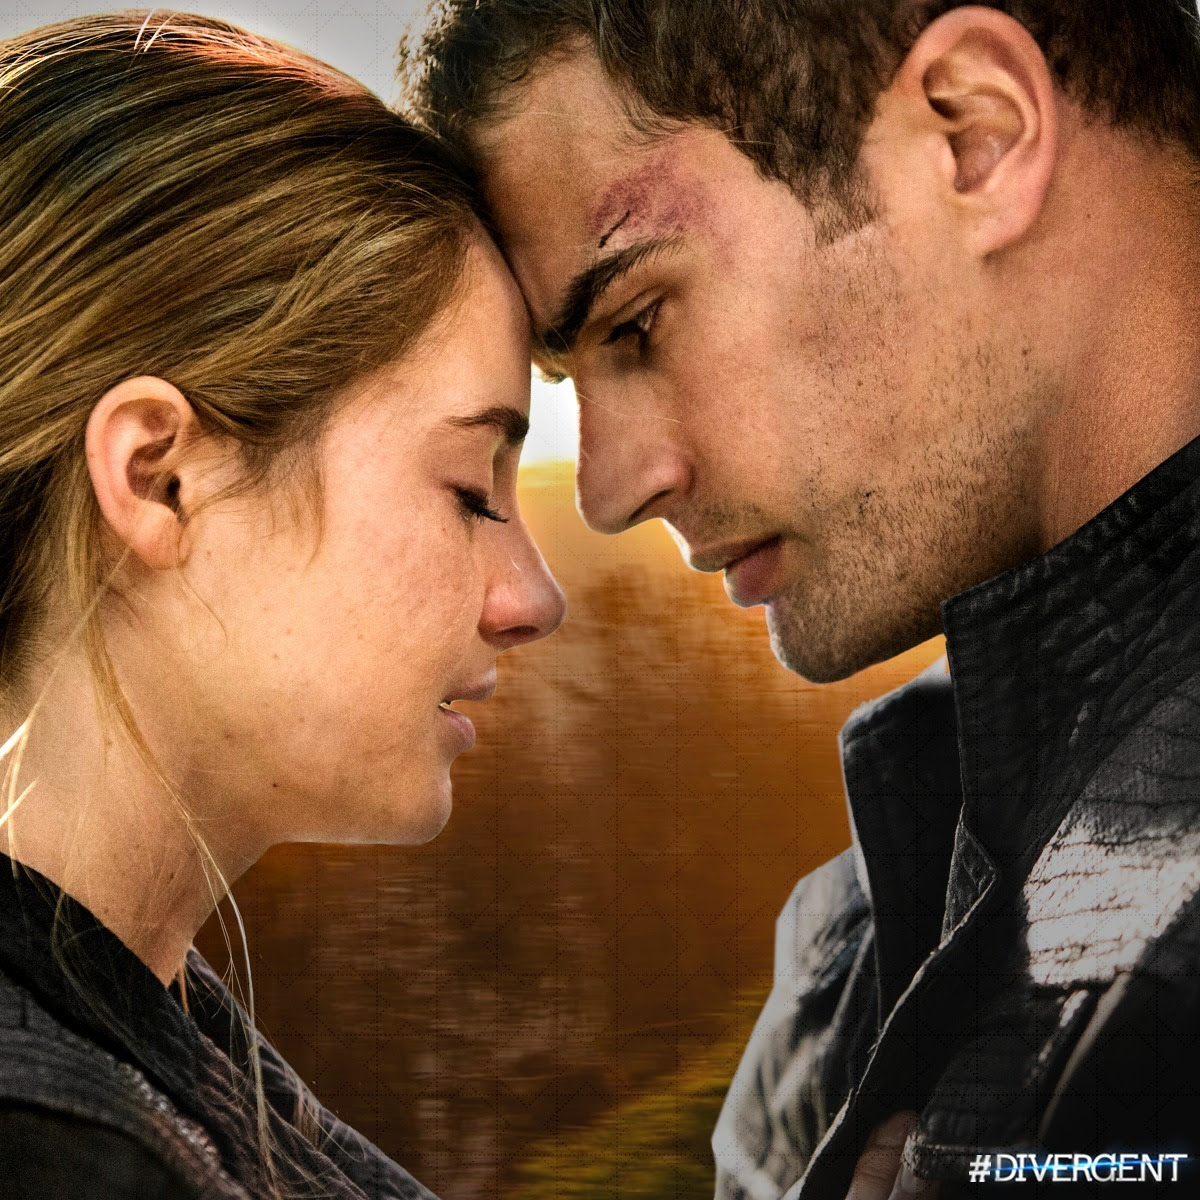 Celebrate FourTris this Valentine's Day! We'd be remiss if we didn't pay tribute to our beloved FourTris this Valentine's Day. Throughout the day, we'll be sharing our favorite FourTris moments from DIVERGENT. Here's how YOU can help us celebrate: Submit your original FourTris fan art, favorite DIVERGENT quote, or a post about FourTris to DivergentOfficial.com here Enter to win a set of divergentmovie companion books here Tag your posts with #FourTris On Valentine's Day, we'll post your submissions here and on Facebook. As an added treat, we'll also announce the winners of our movie companion books giveaway.